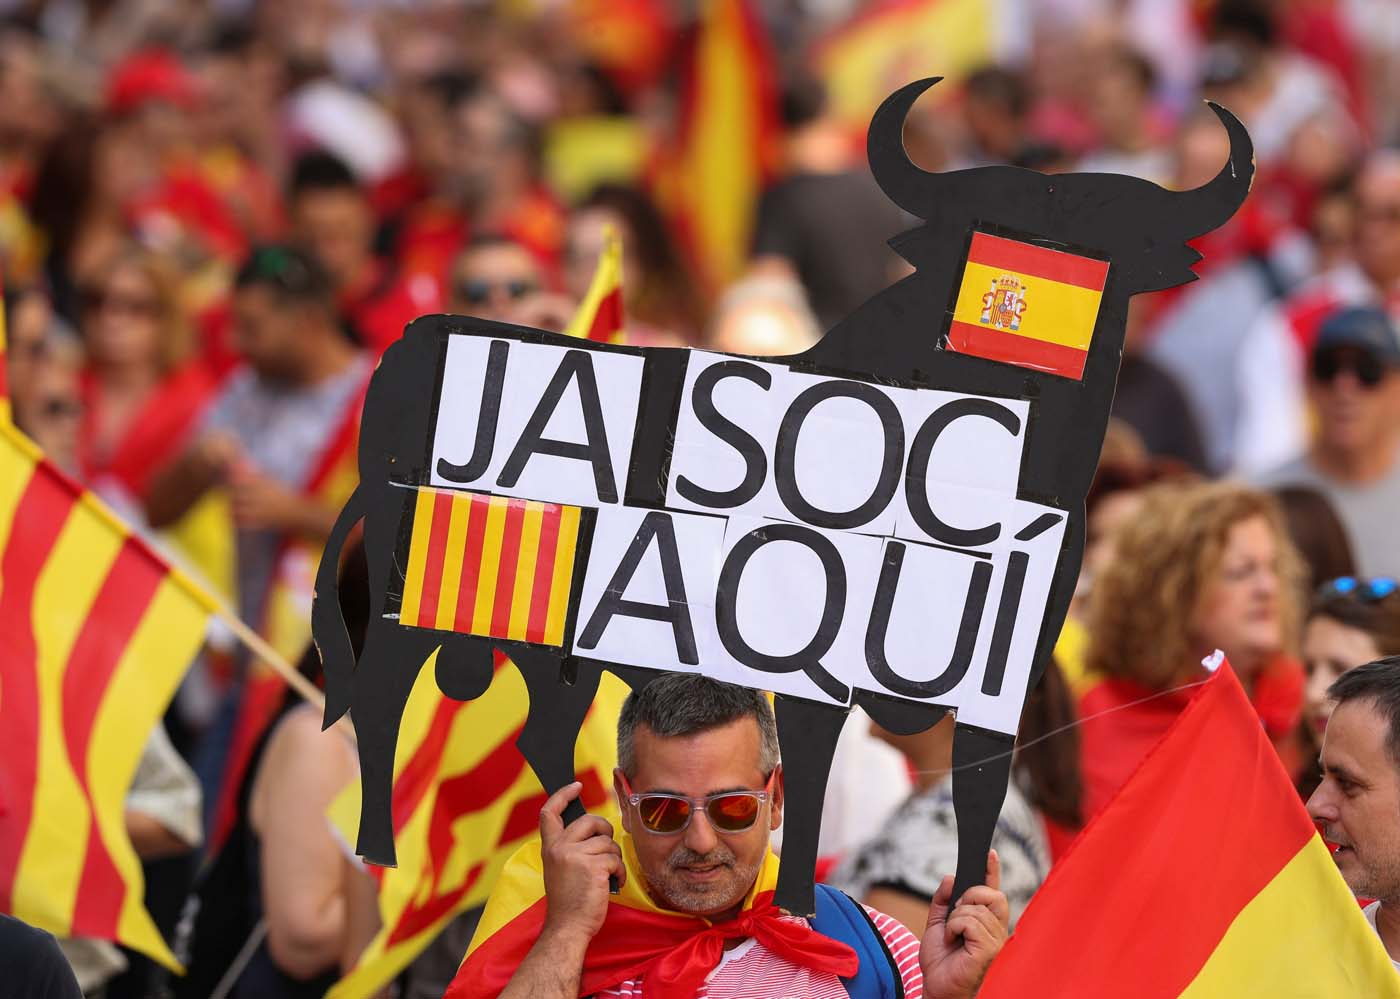 """A man holds up a banner in the form of a bull reading """"I am here"""" during a pro-union demonstration organised by the Catalan Civil Society organisation in Barcelona, Spain, October 8, 2017. REUTERS/Albert Gea"""